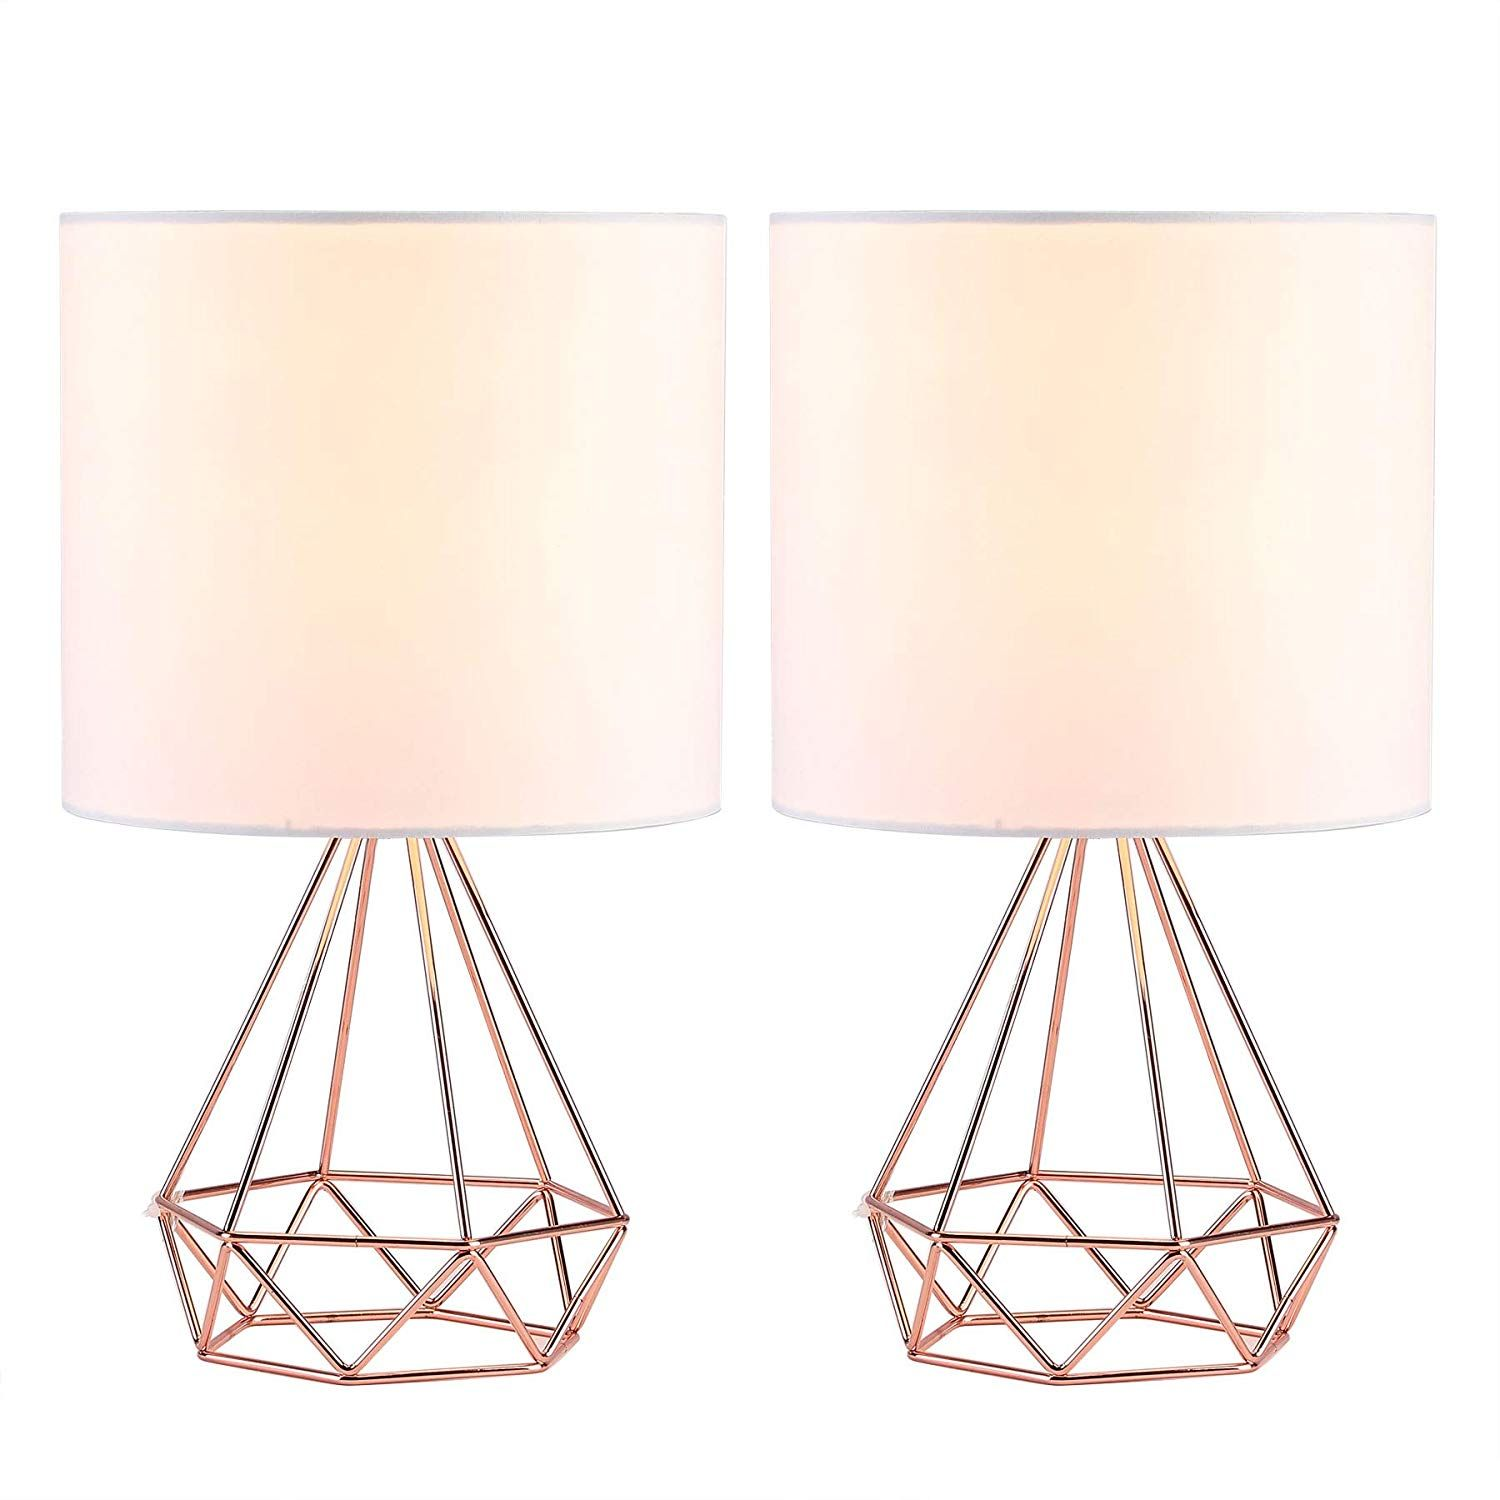 Co Z Modern Table Lamps For Living Room Bedroom Set Of 2 Rose Gold Desk Lamp With Hollowed Out Base And White Fabric Sha Modern Table Lamp Rose Gold Lamp Lamp